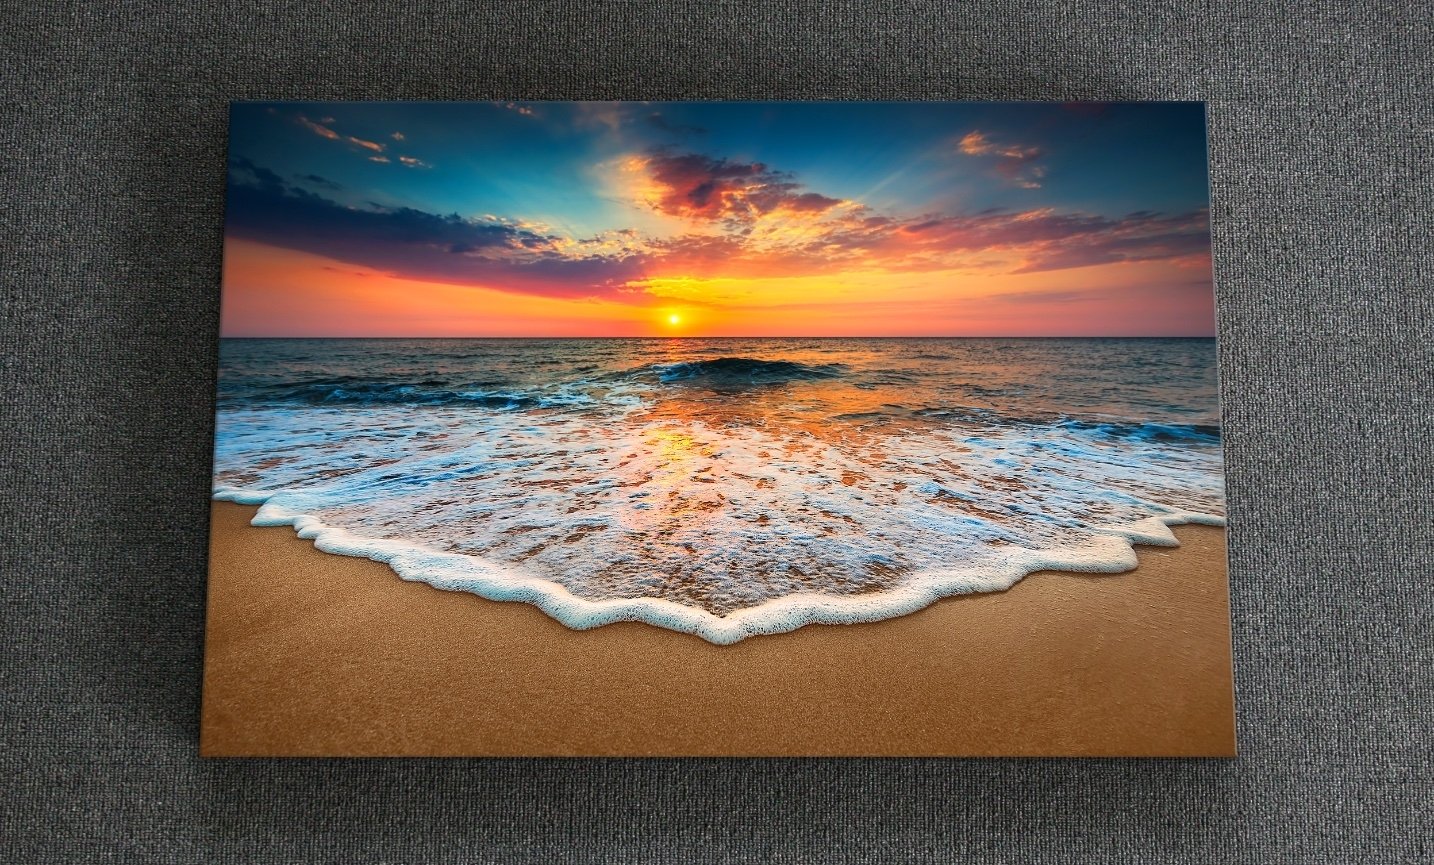 Hd Canvas Printing | Photos, Images & Hd Canvas Prints | Prints On With Regard To Most Up To Date Gold Coast Canvas Wall Art (View 8 of 15)